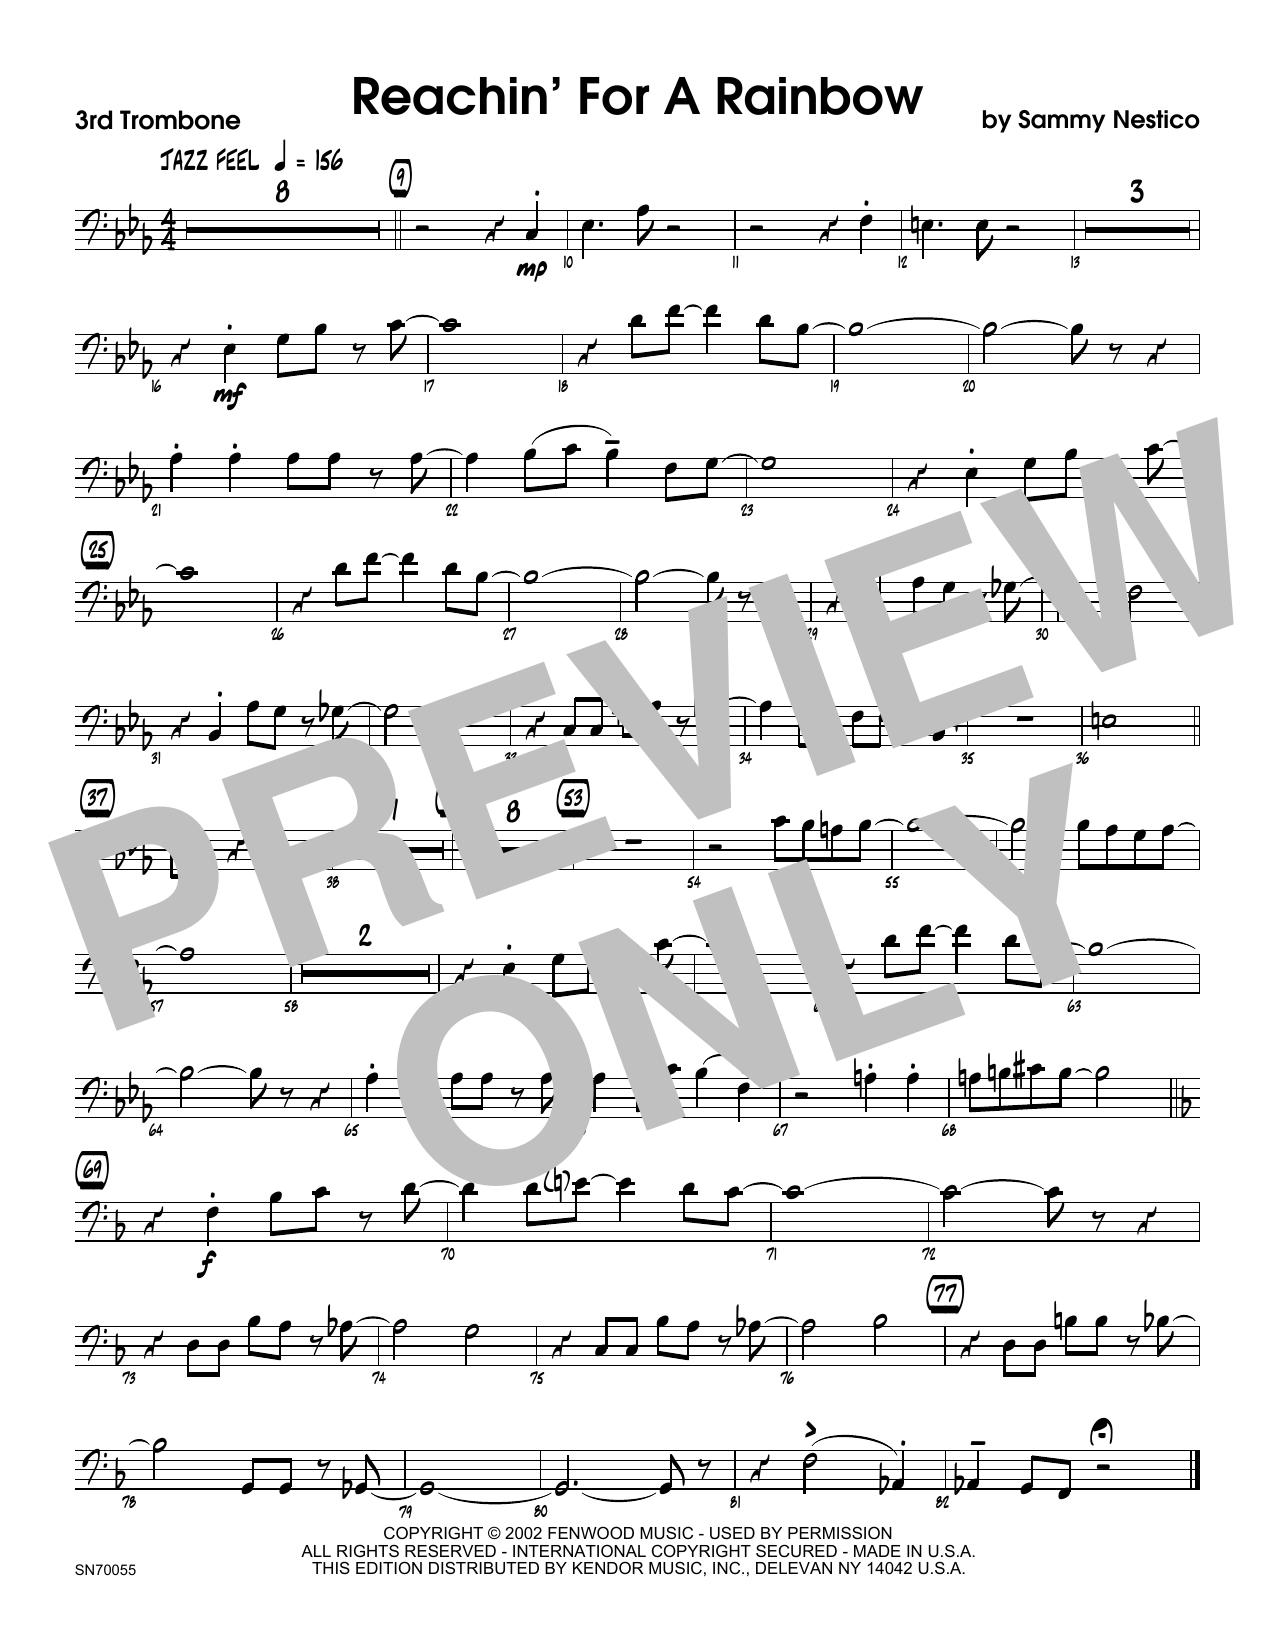 Reachin' For A Rainbow - 3rd Trombone Sheet Music